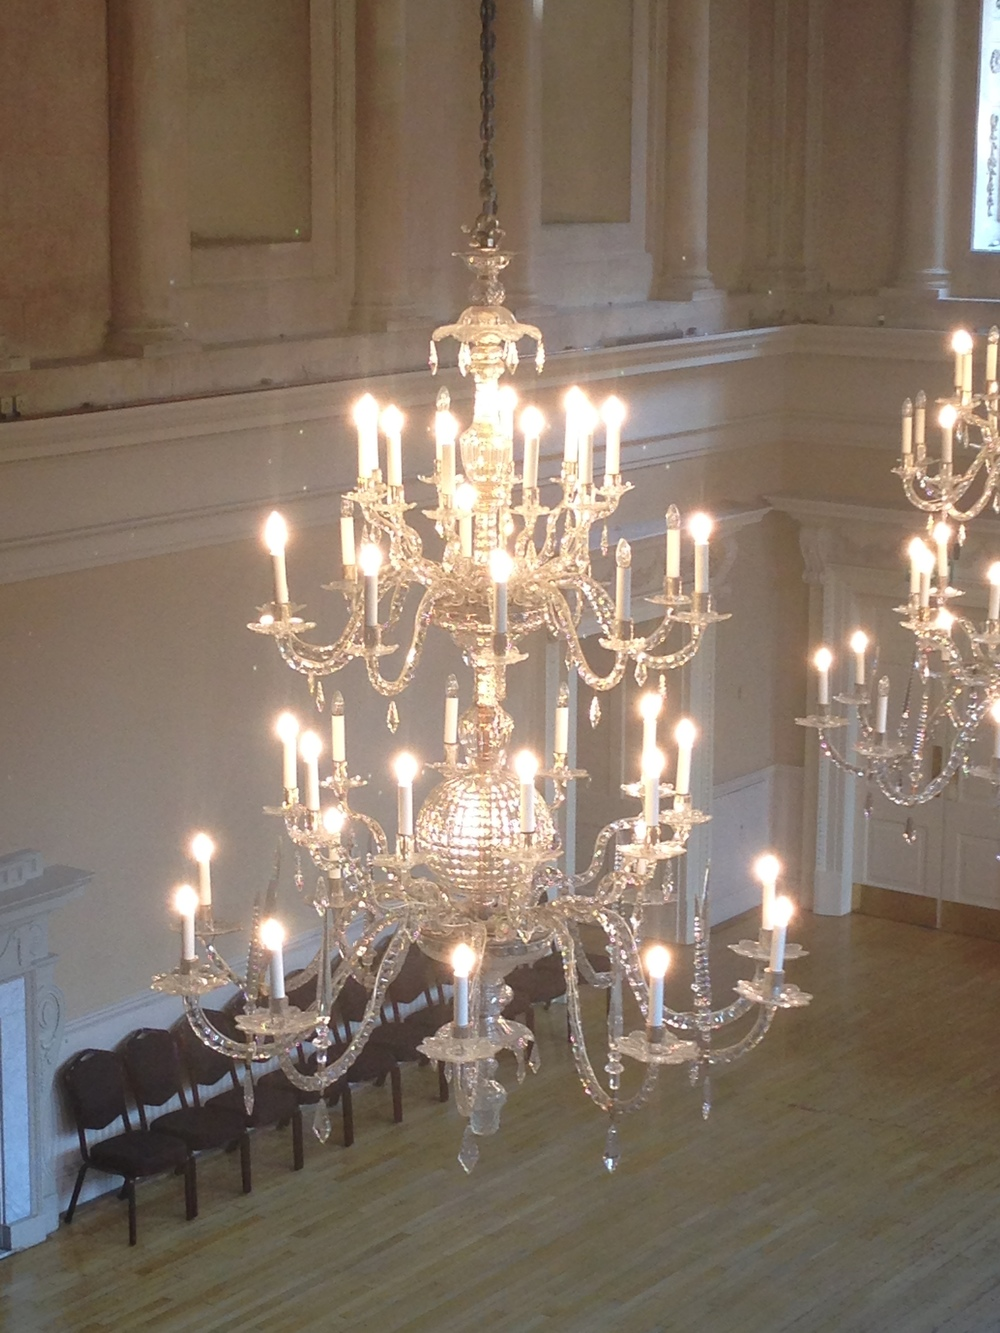 A close-up of another chandelier.